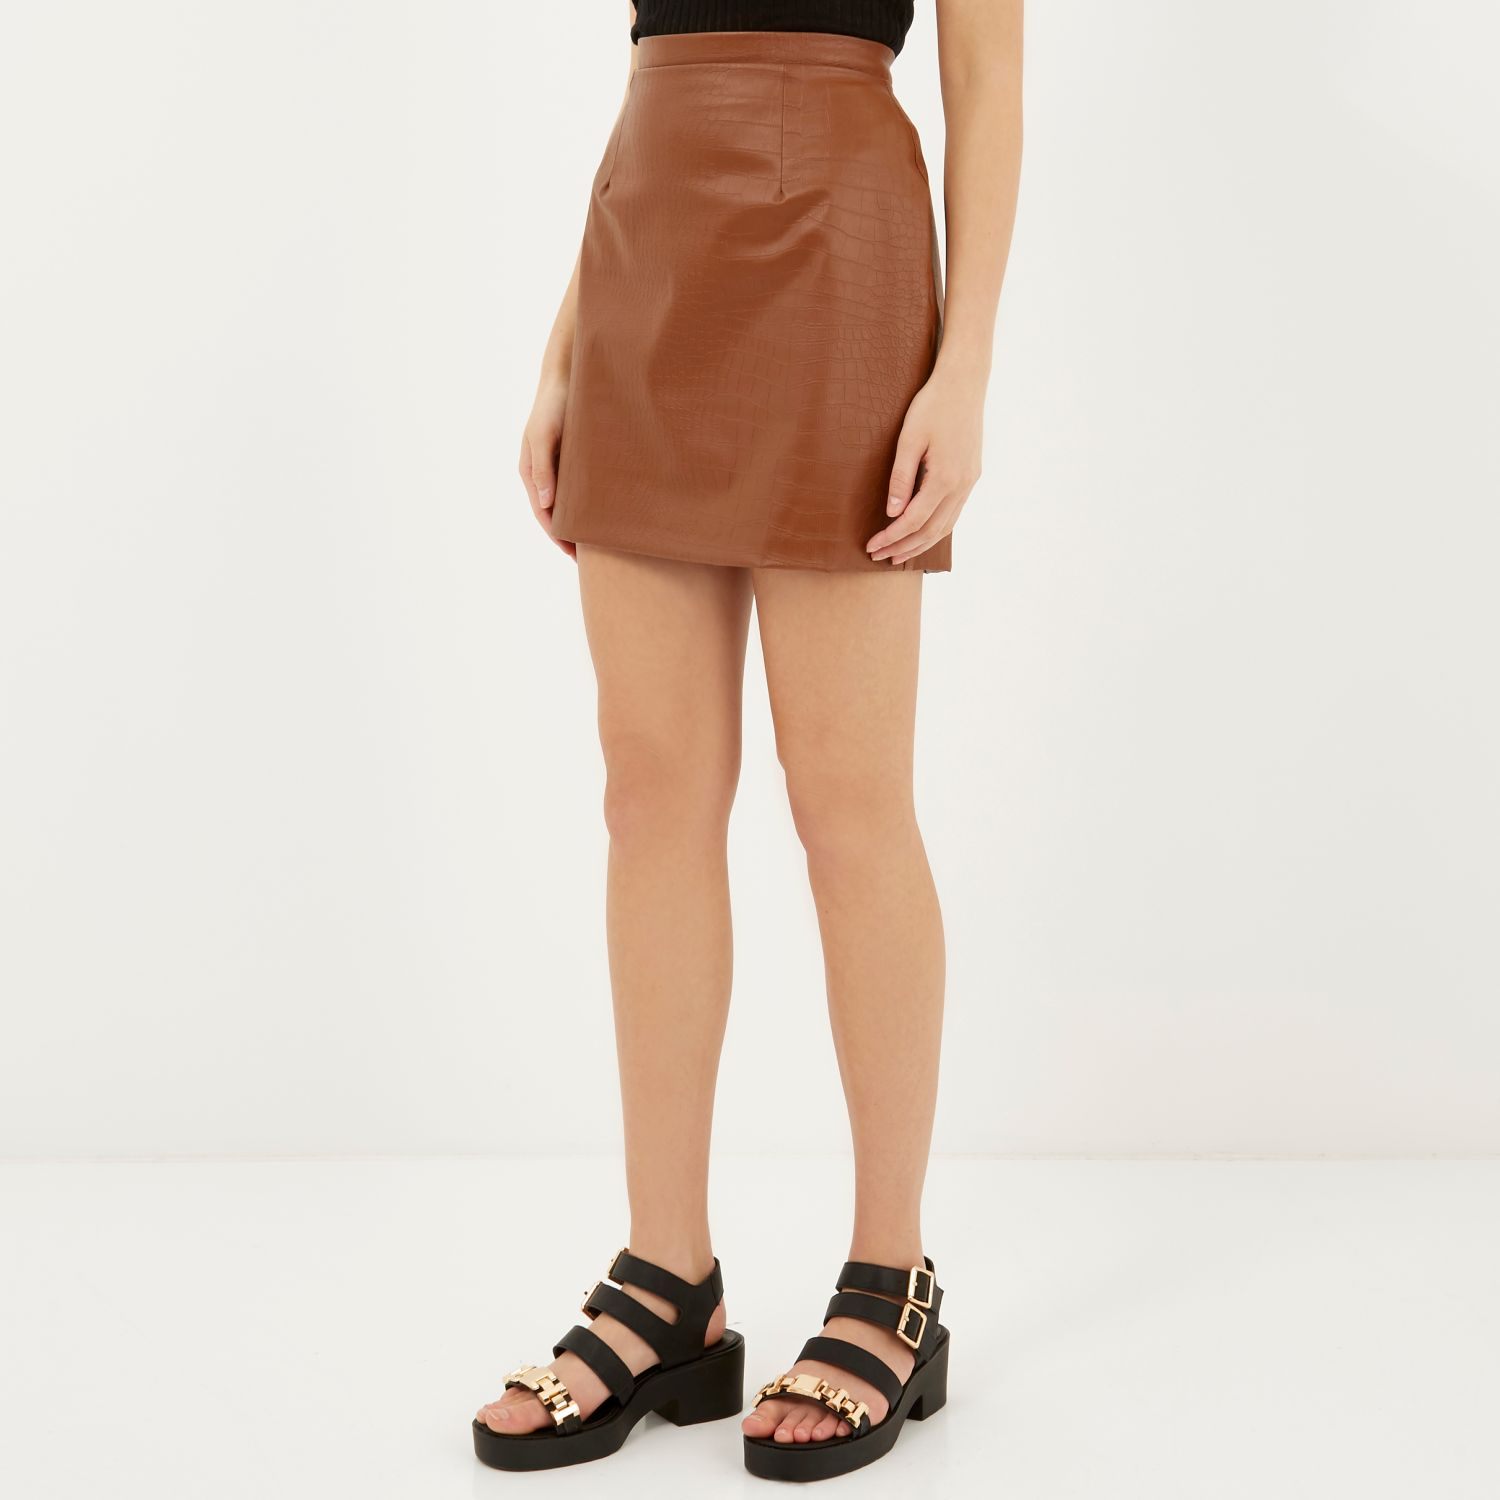 River island Brown Leather-look Mock Croc A-line Skirt in Brown | Lyst